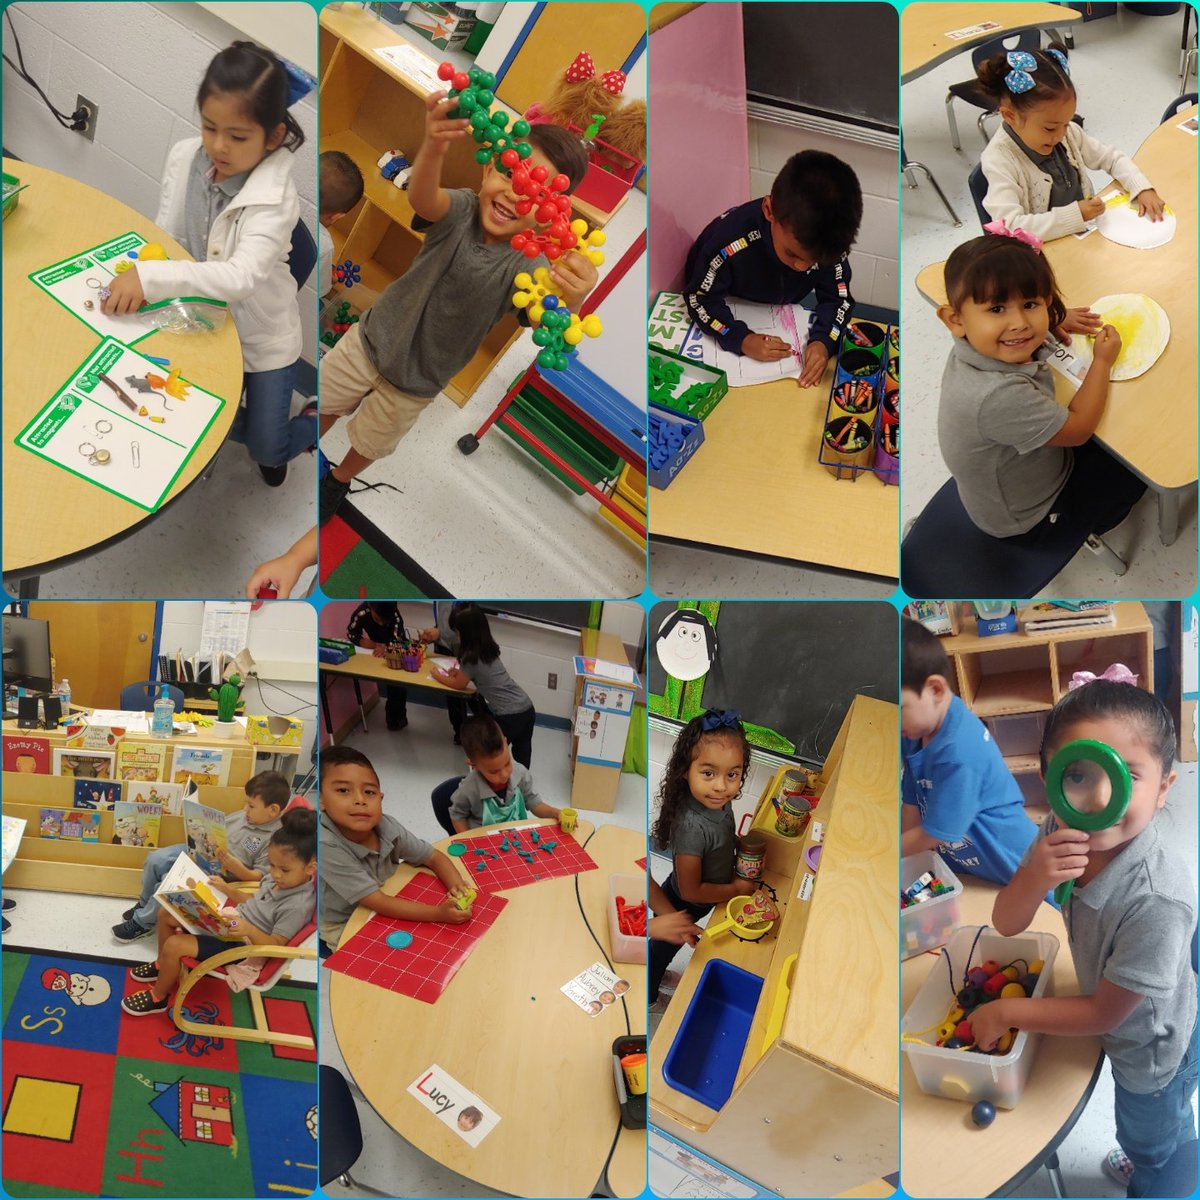 Our Pre-K students love showing their creativity during centers!  @RobertRRojas_ES  @JMarquez_RES#RobertRojasElementary<br>http://pic.twitter.com/PYCub3Y310